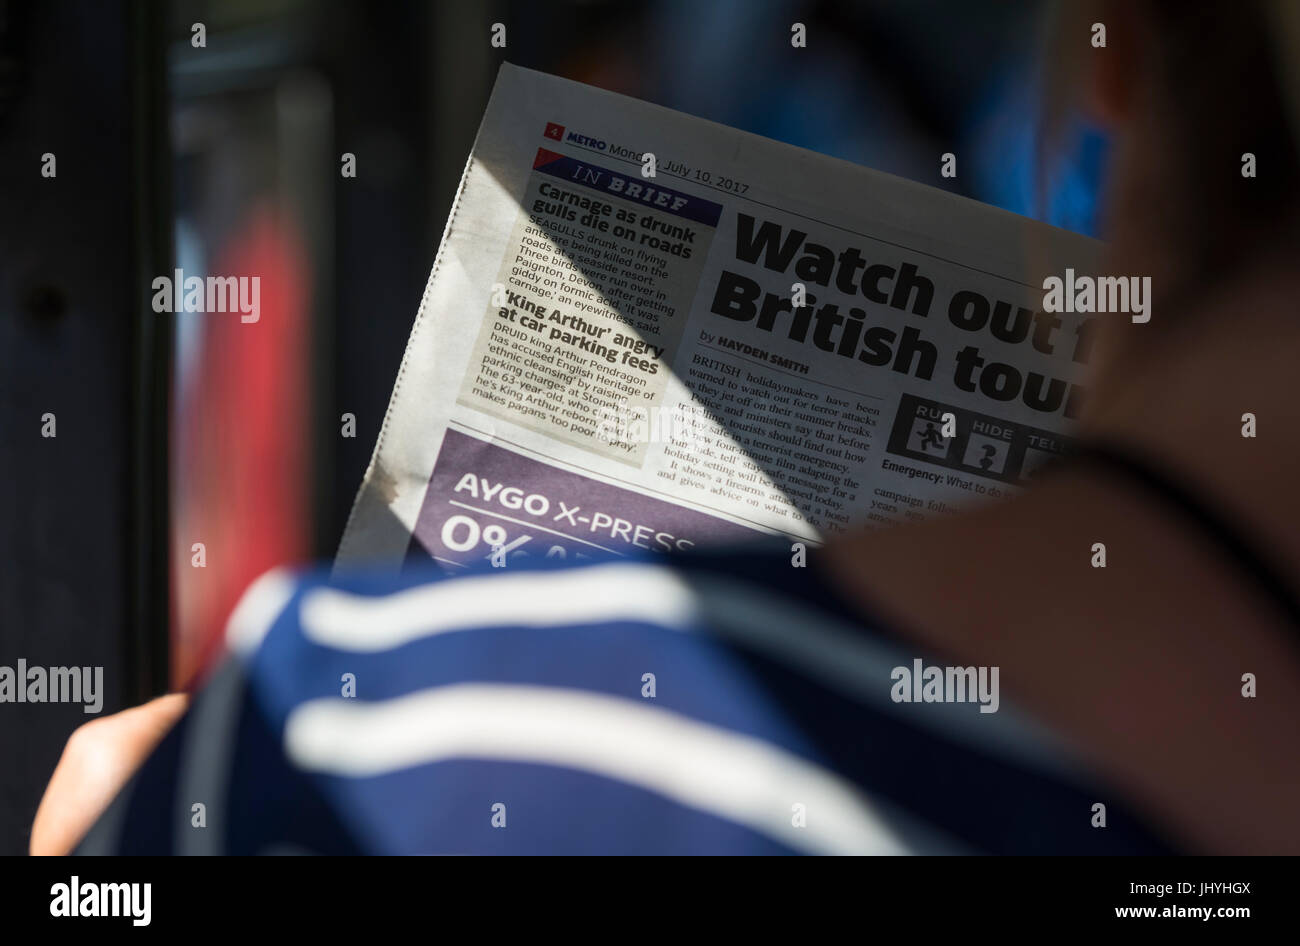 Commuting to work on a bus reading The Metro, a free newspaper in the UK. - Stock Image